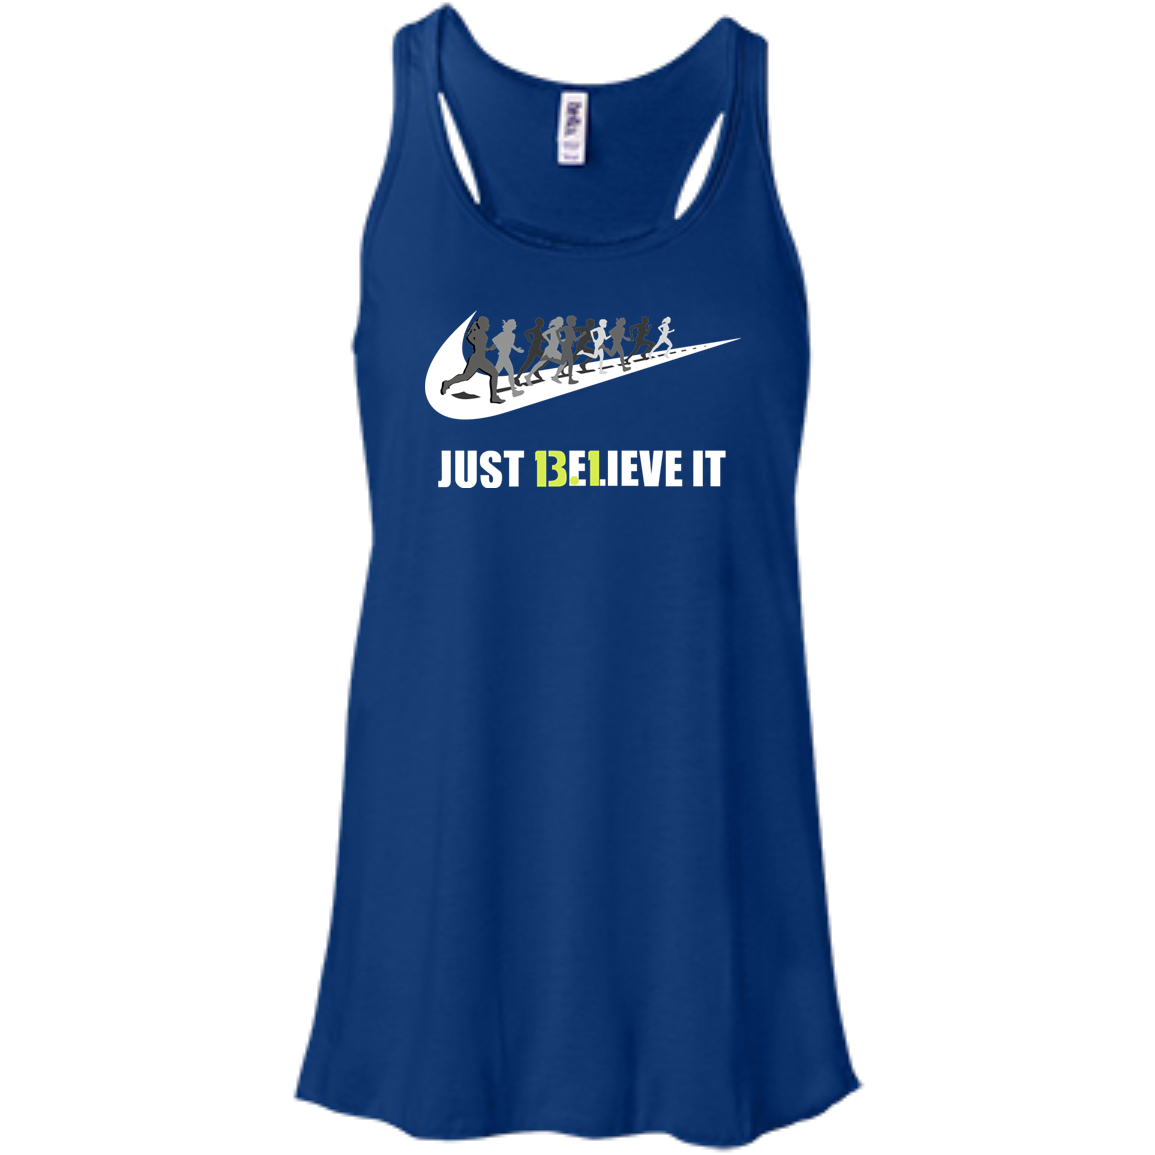 13.1 Just Believe It Half Marathon Ladies T-shirt